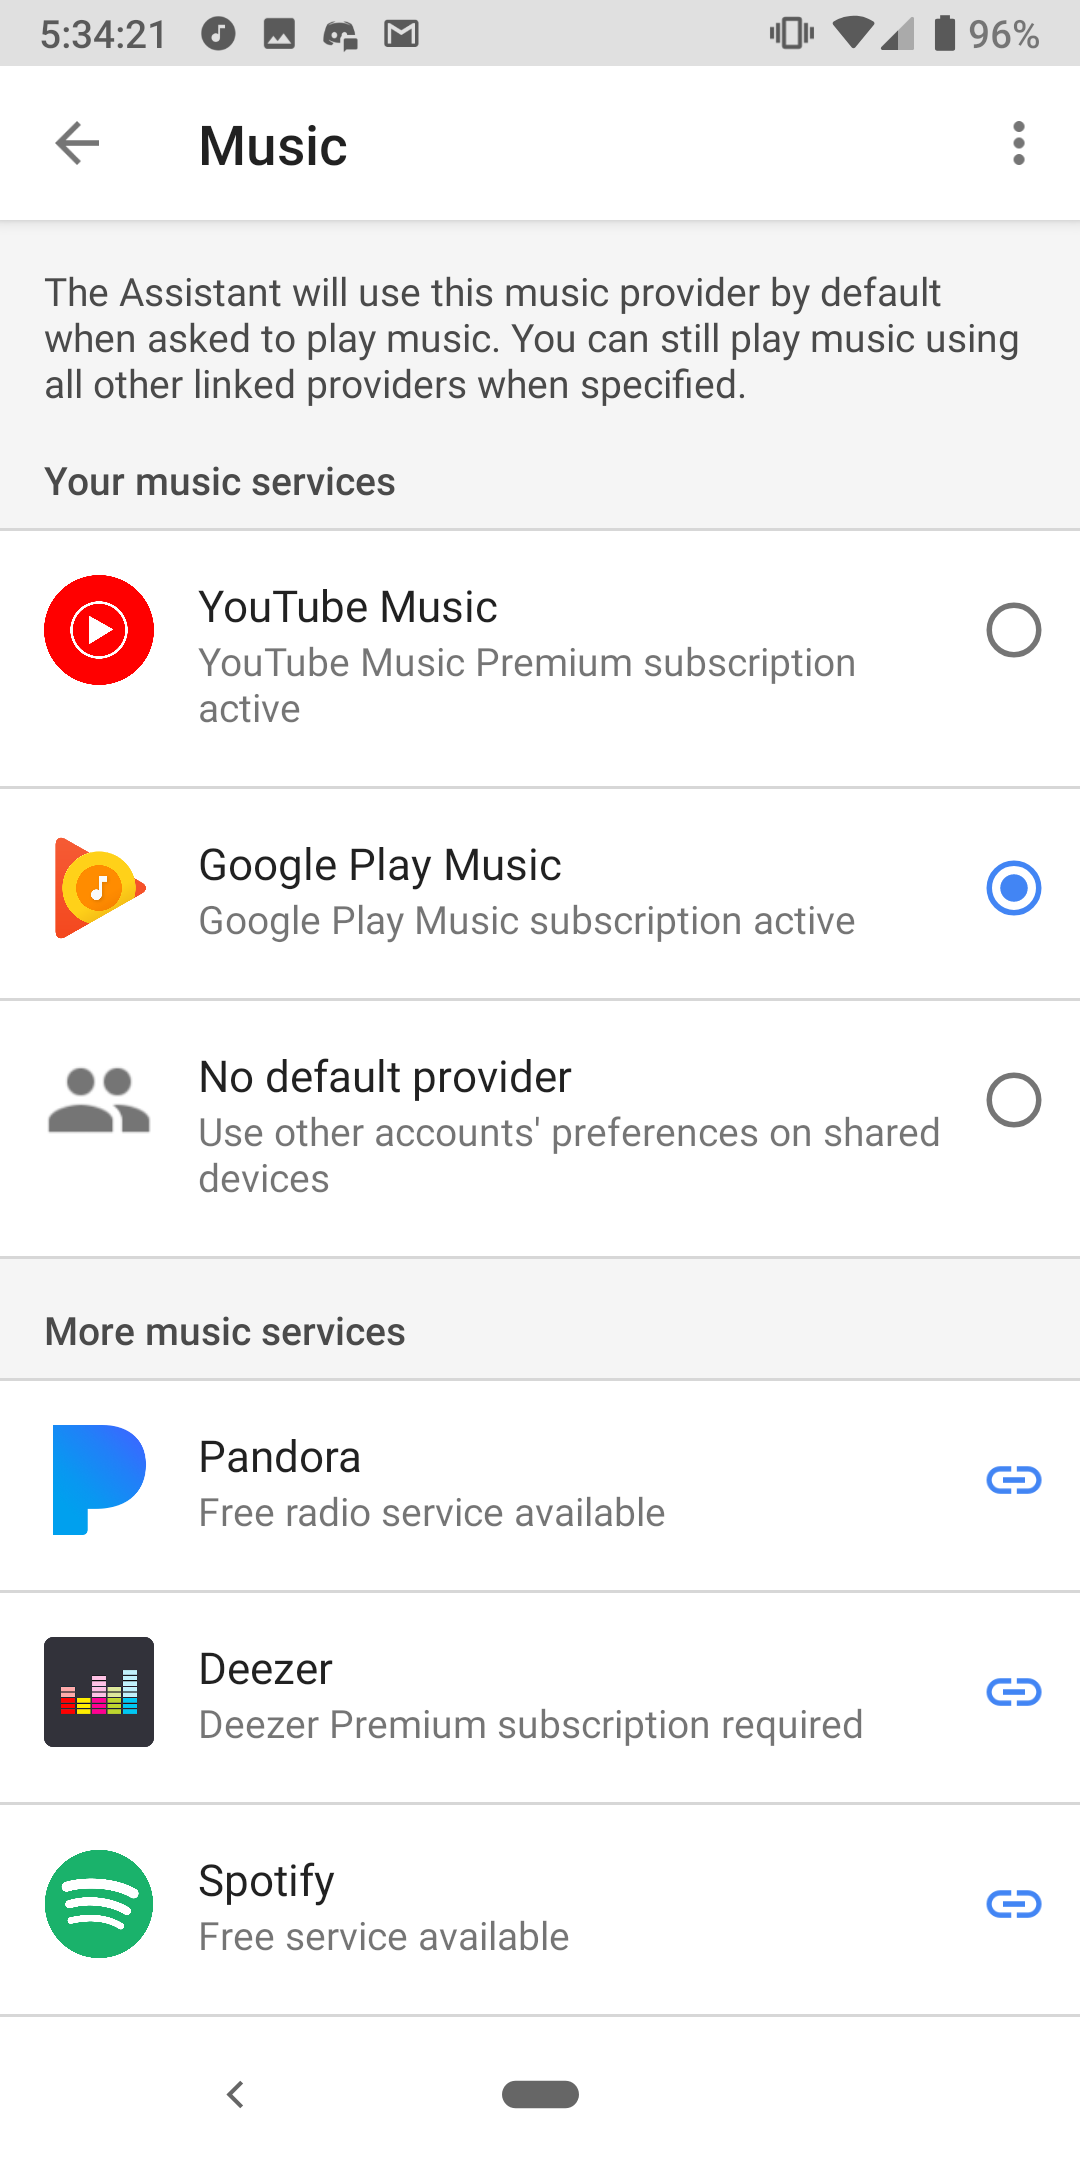 That song's only available for Google Play Music subscribers